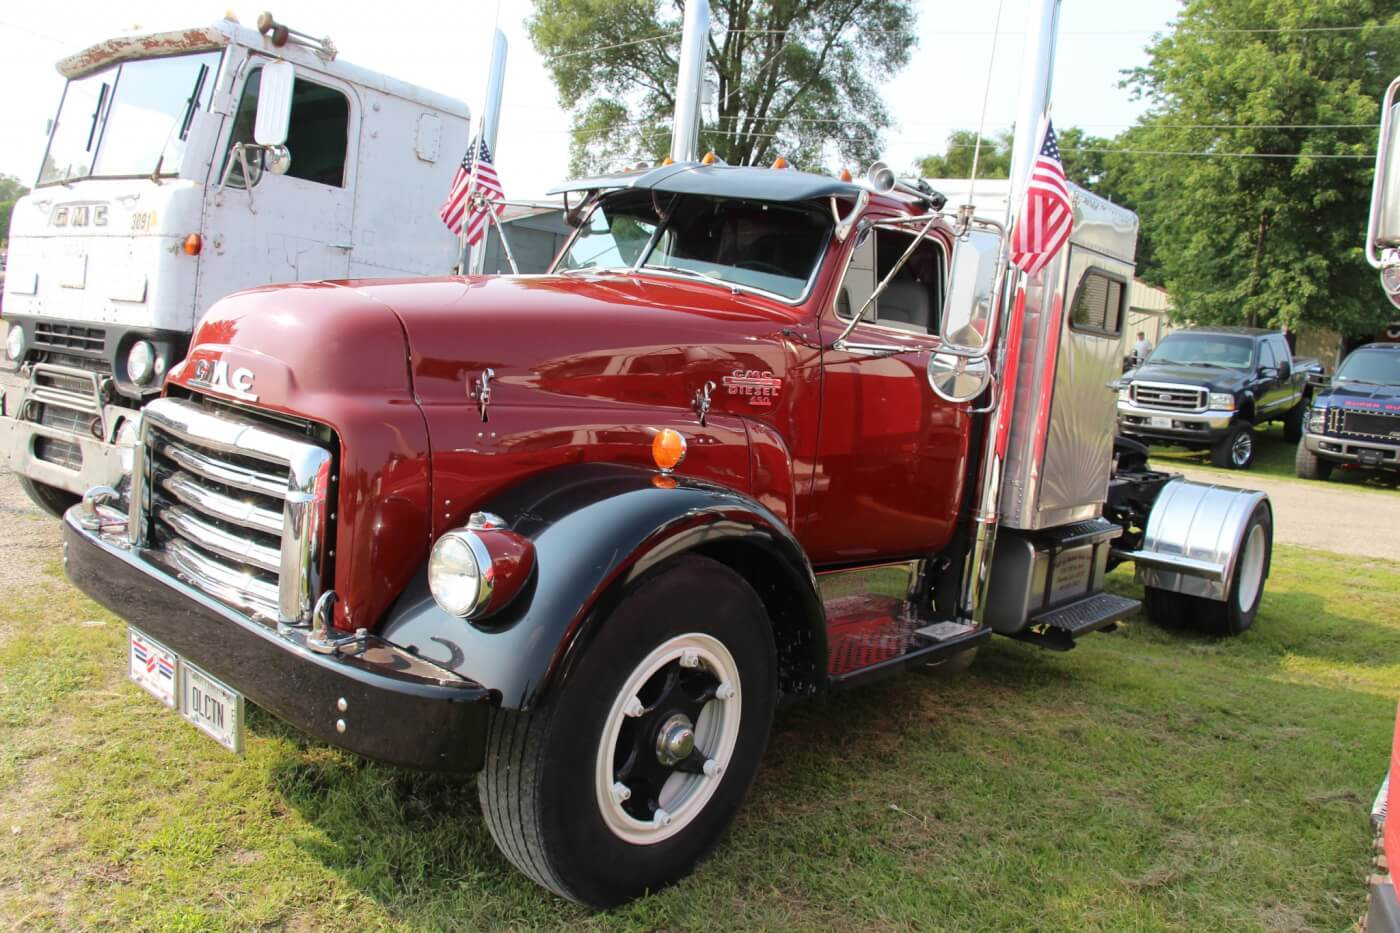 This Detroit powered, GMC Diesel 650 is one of the cleanest versions of GM's early 1950's big rigs we've ever seen. It's definitely a piece of Americana worth holding onto.